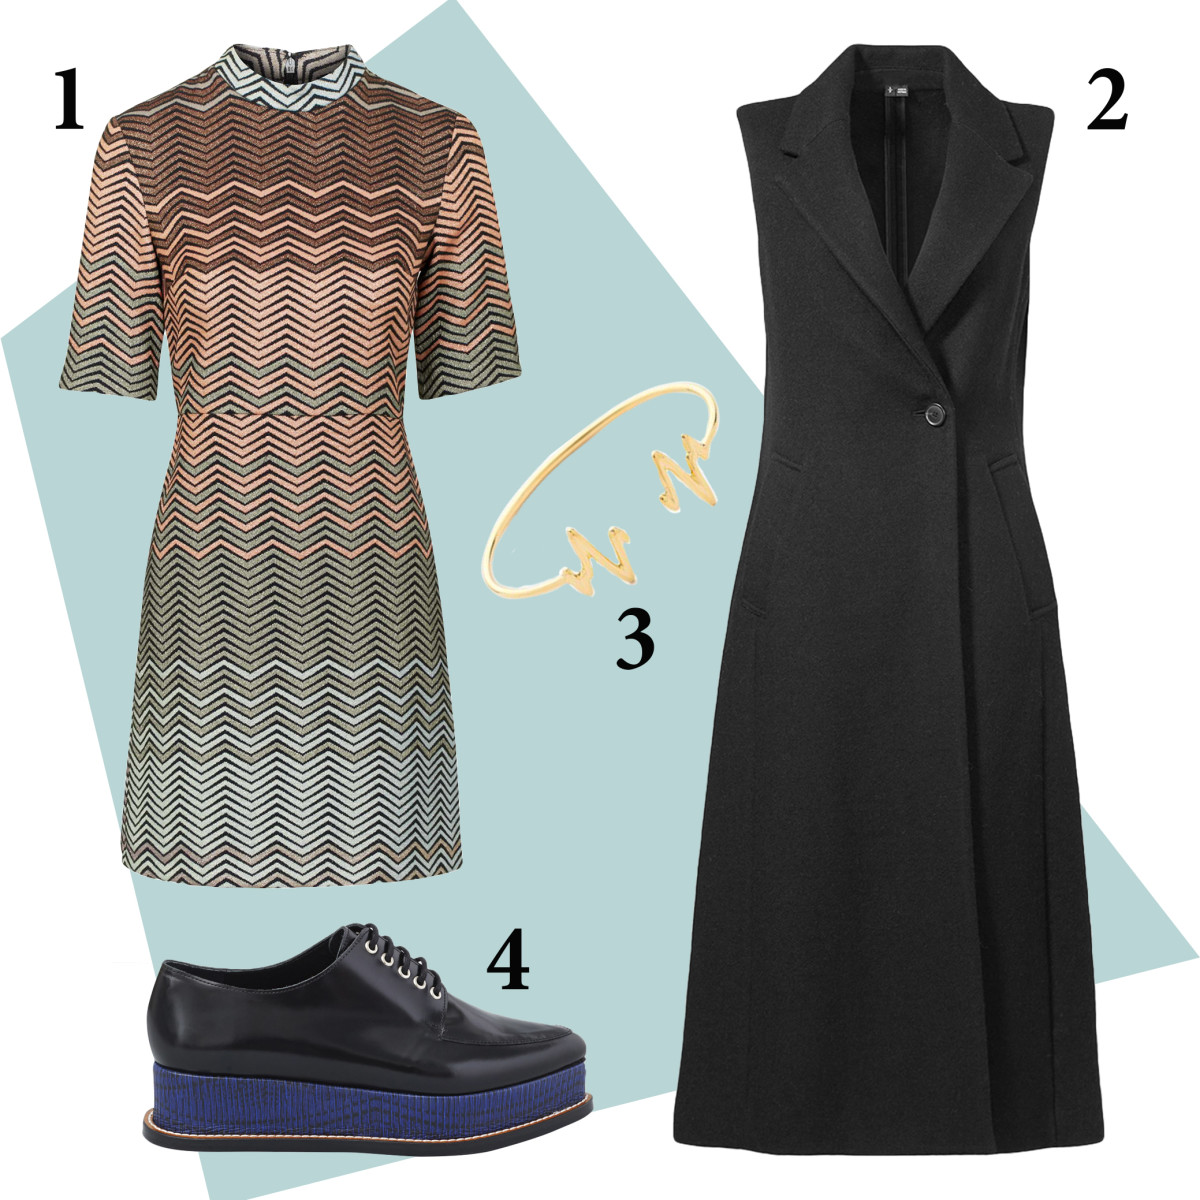 1 — Topshop dress, $110, available at Topshop; 2 — Theory Tremayah vest, $625, available at Barneys; 3 — Sarah Chloe bracelet, $139, available at Shopbop; 4 — Opening Ceremony oxfords, $445, available at Opening Ceremony and Nordstrom.